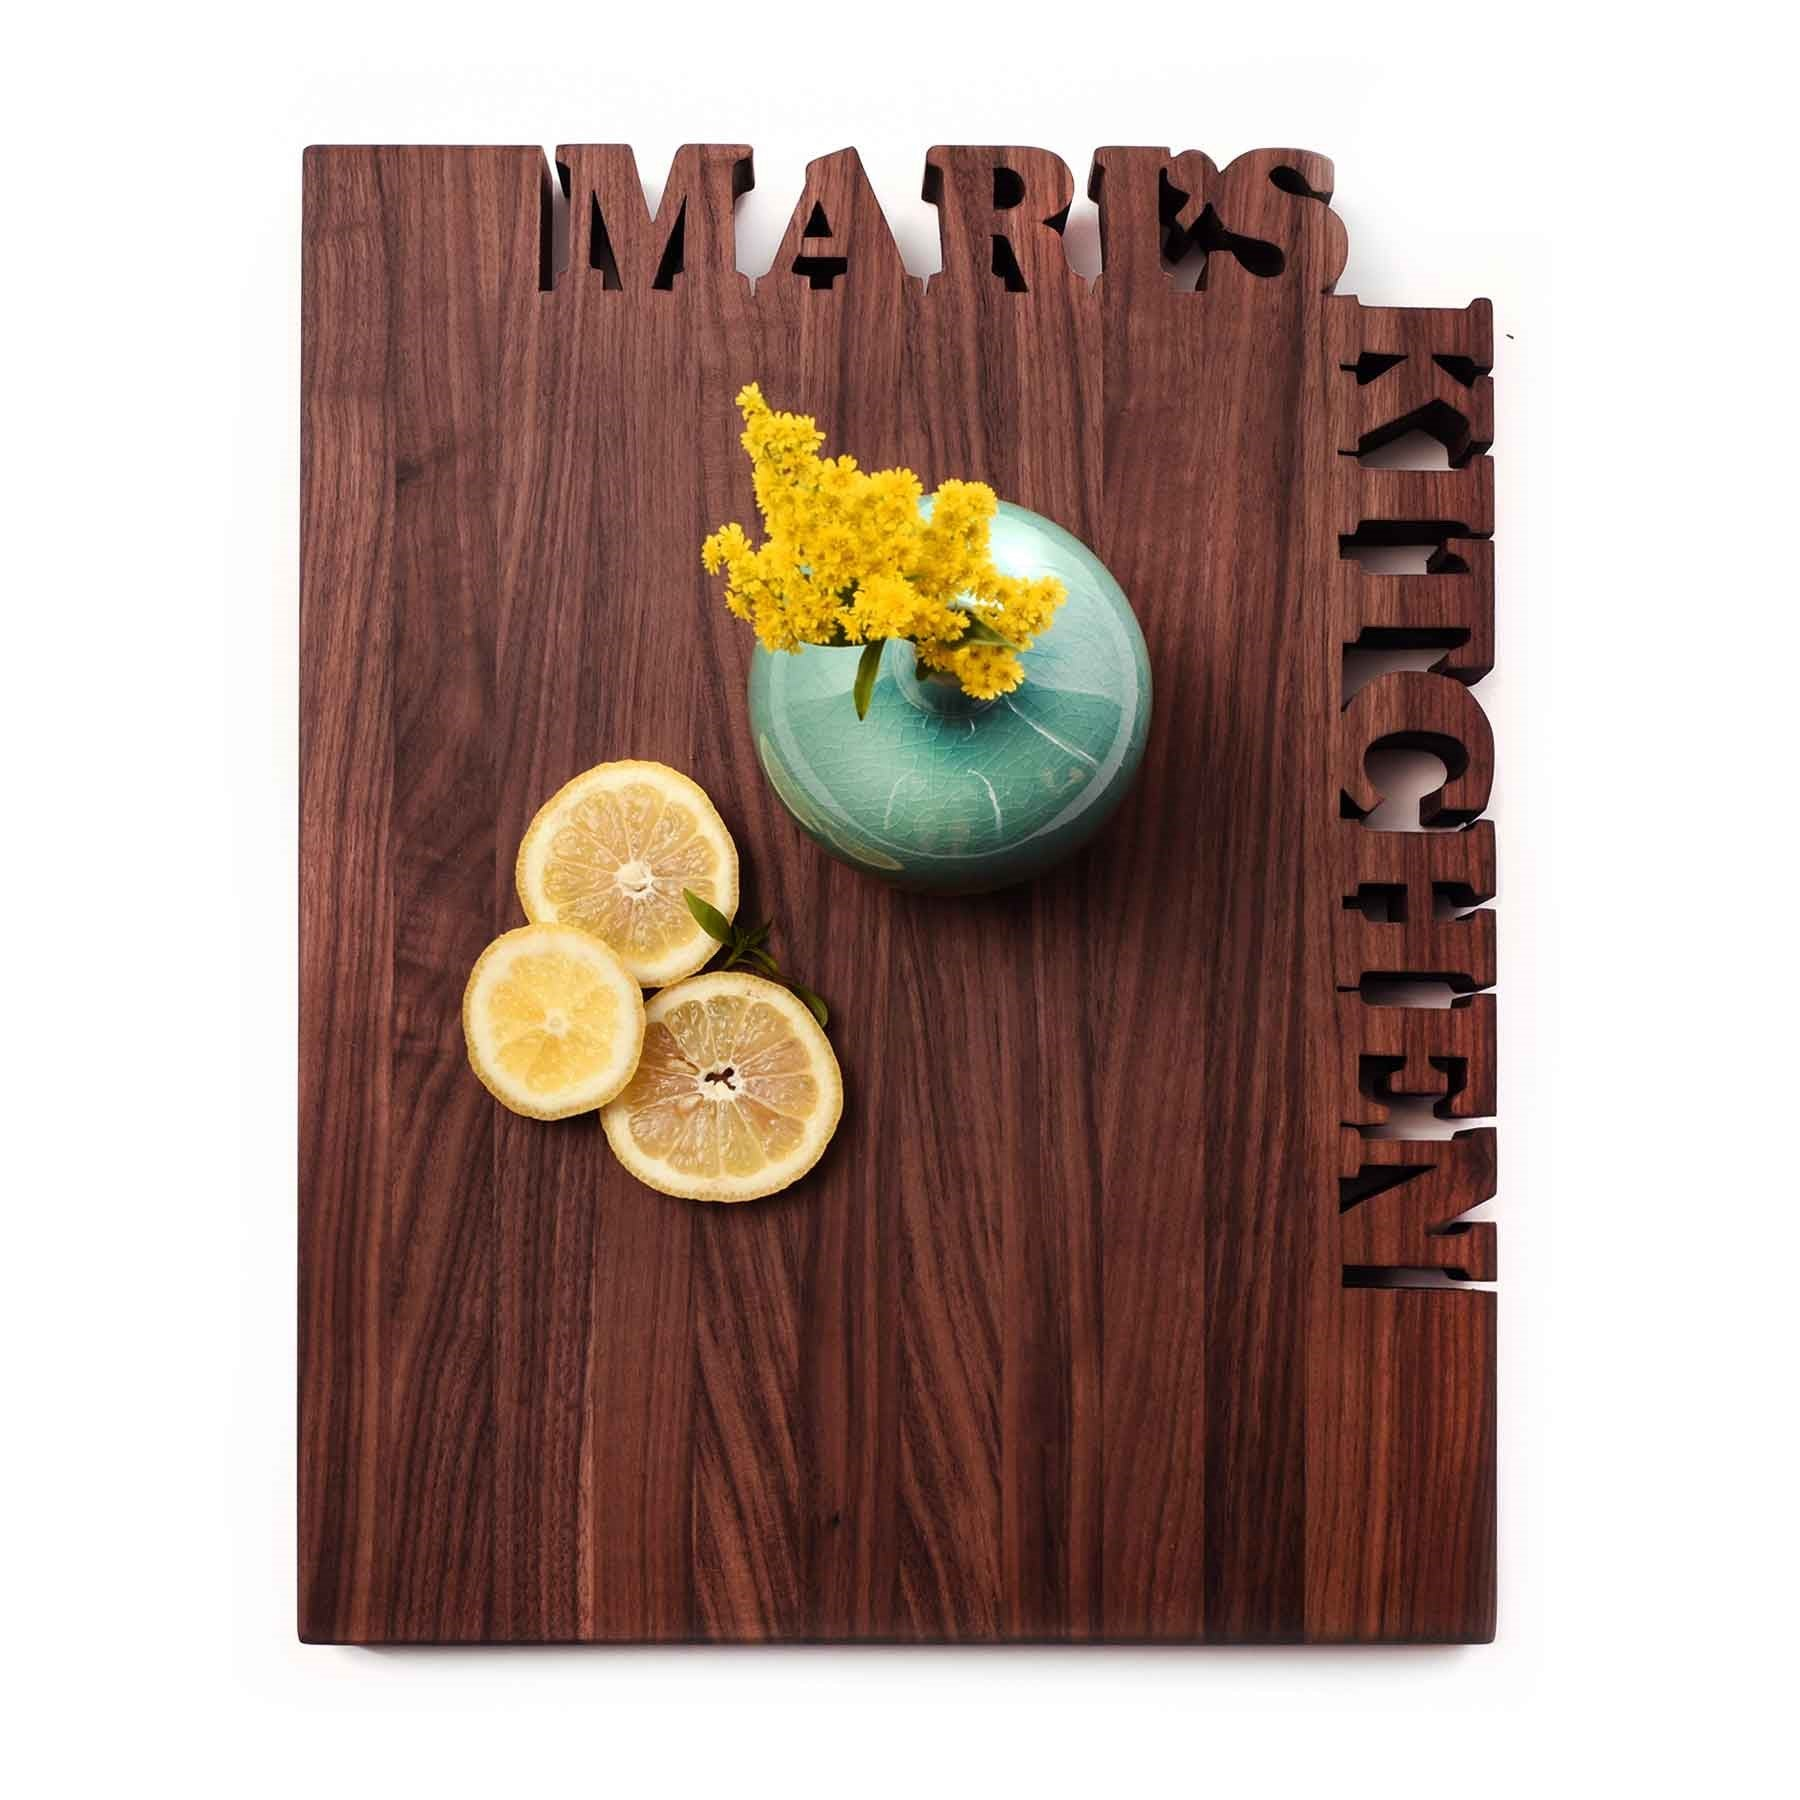 Custom cutting boards, walnut wood with name carved out